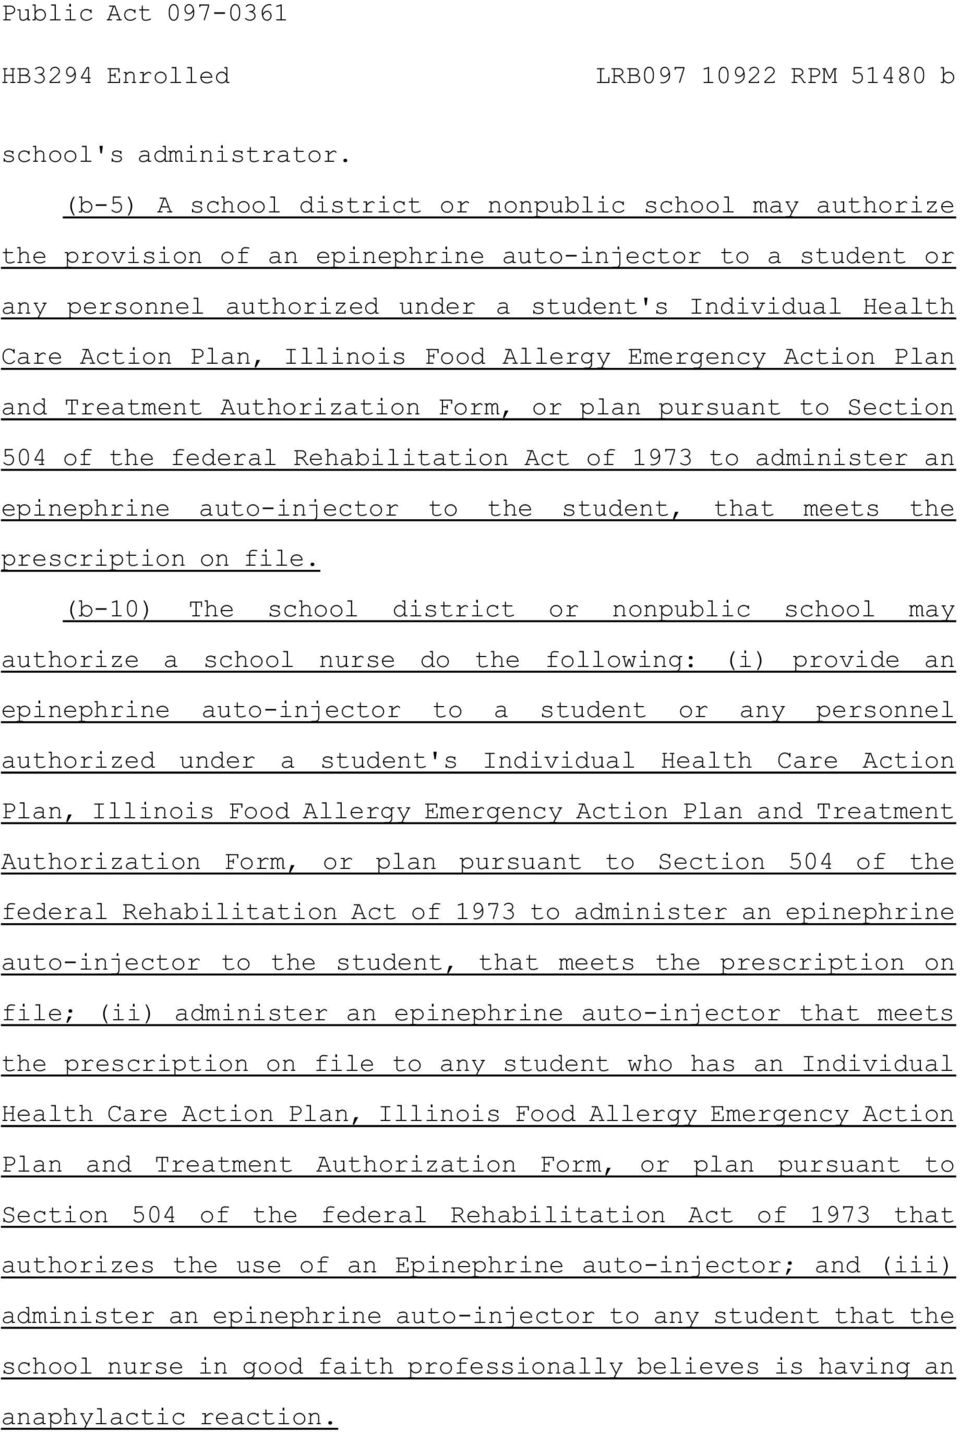 Illinois Food Allergy Emergency Action Plan and Treatment Authorization Form, or plan pursuant to Section 504 of the federal Rehabilitation Act of 1973 to administer an epinephrine auto-injector to